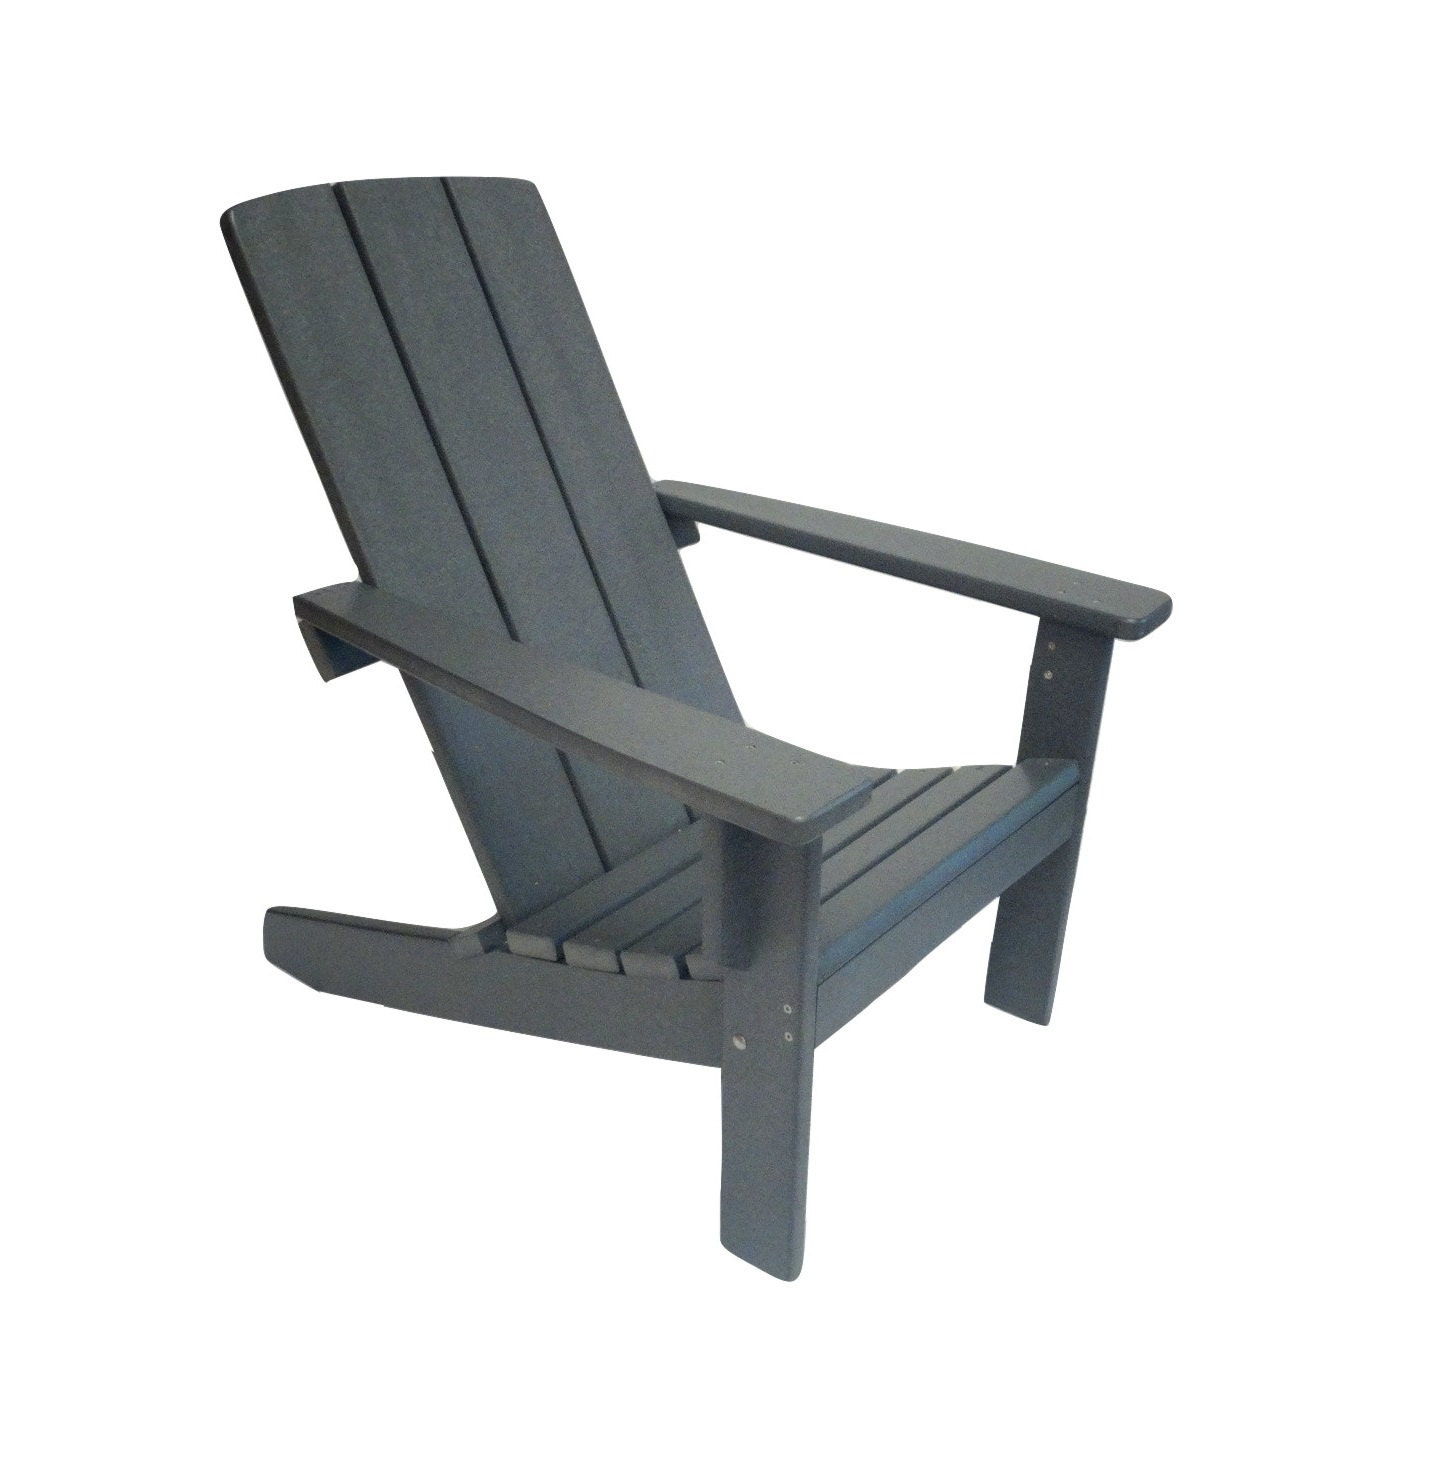 modern adirondack chair folding outdoor chairs big w style made from poly wood